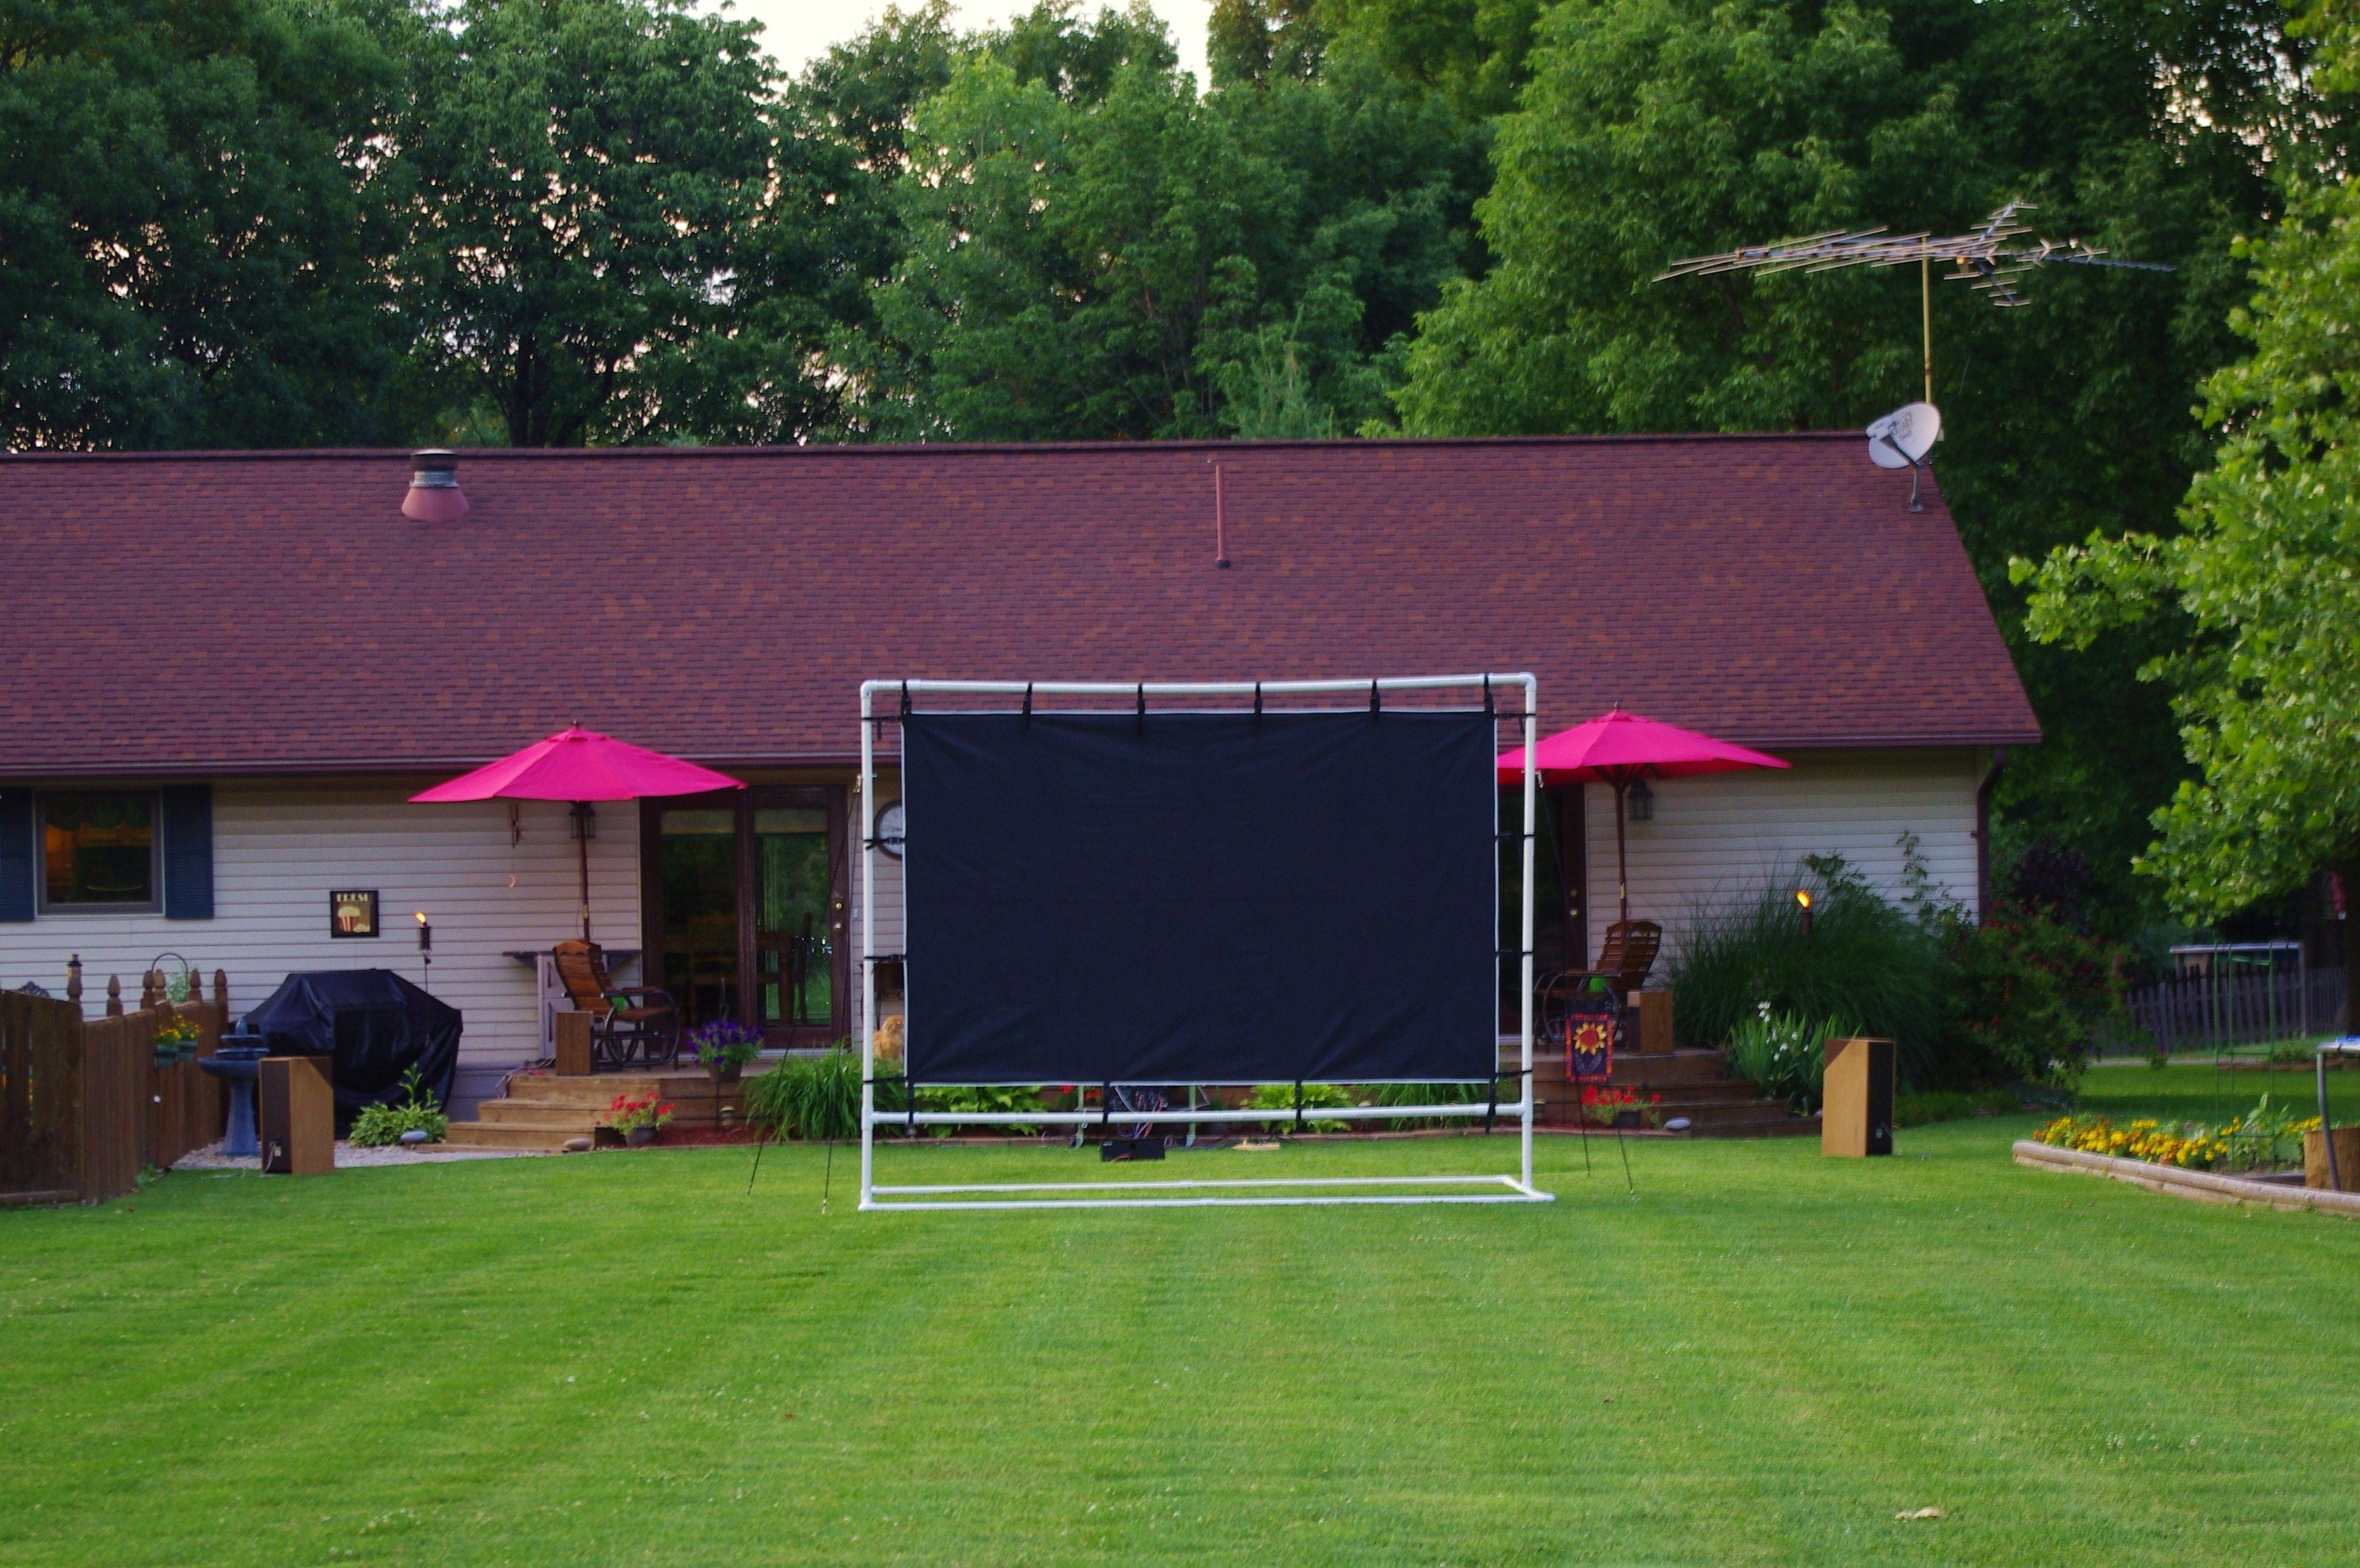 Backyard Theater Ideas : Our Backyard Theater  Backyard Theater Ideas  Pinterest